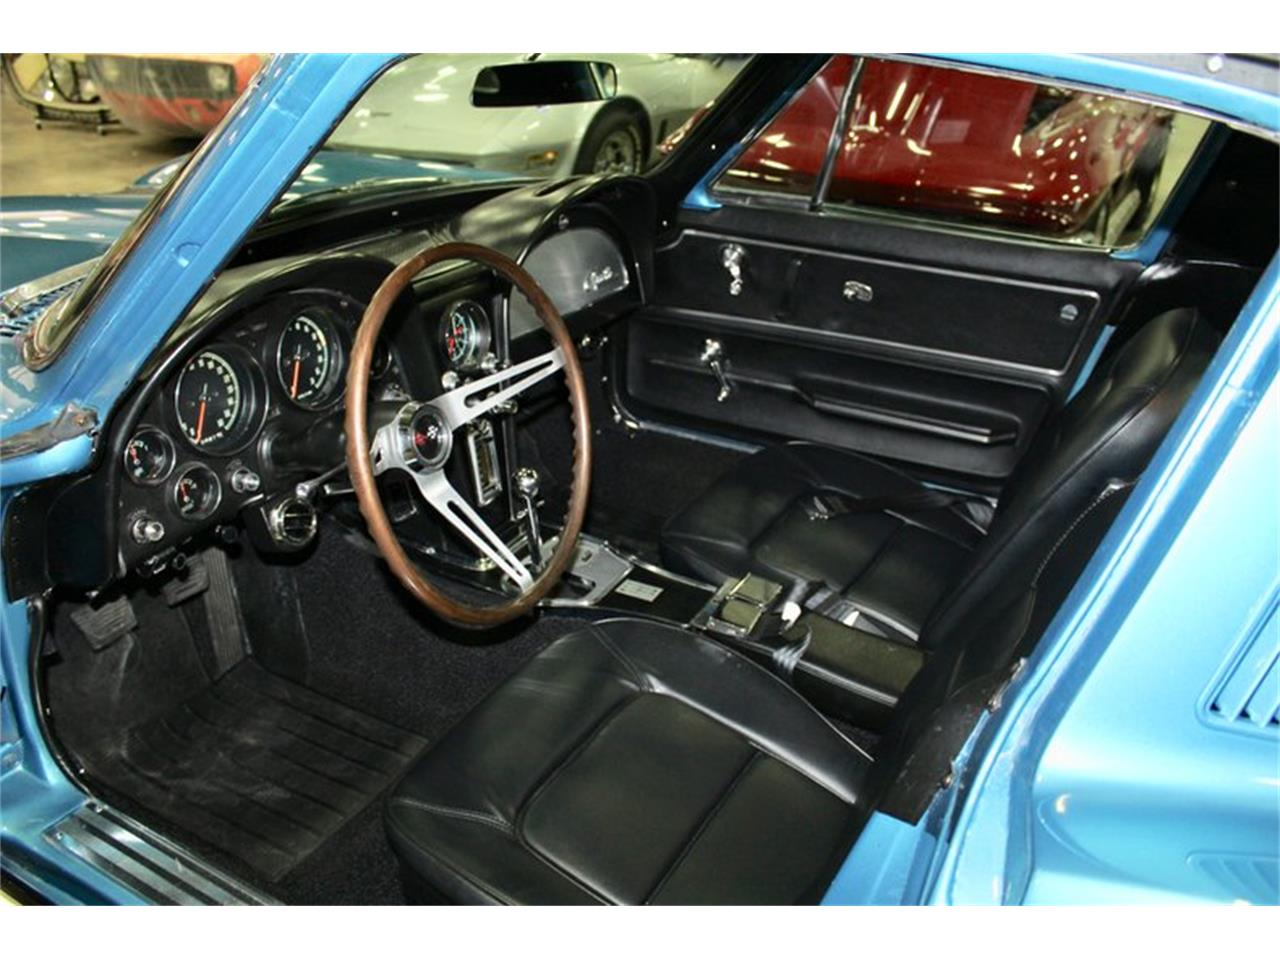 Large Picture of 1965 Chevrolet Corvette located in Florida Offered by Classic Cars of Sarasota - QSRR